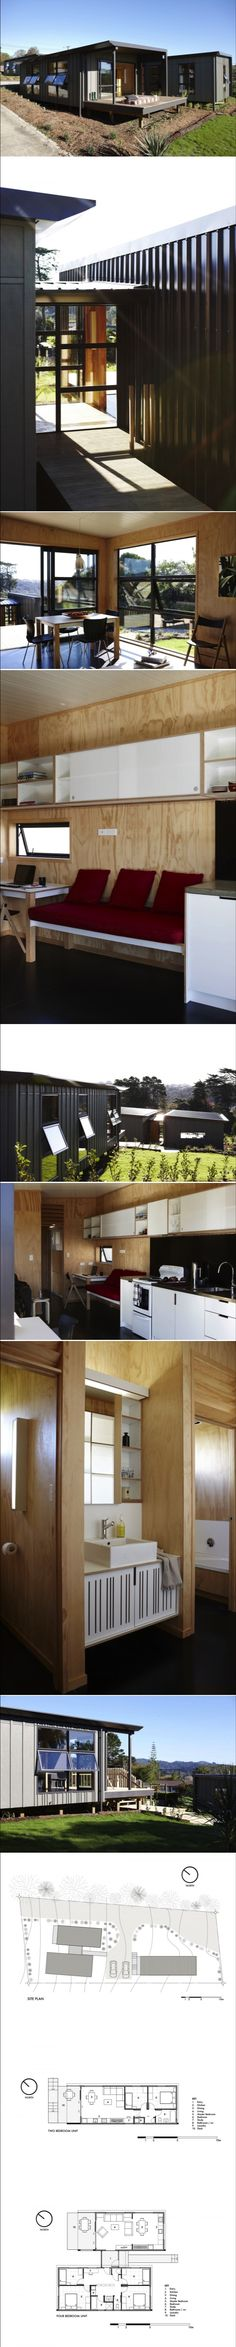 Architecture Students Also Design and Build Two Community Houses